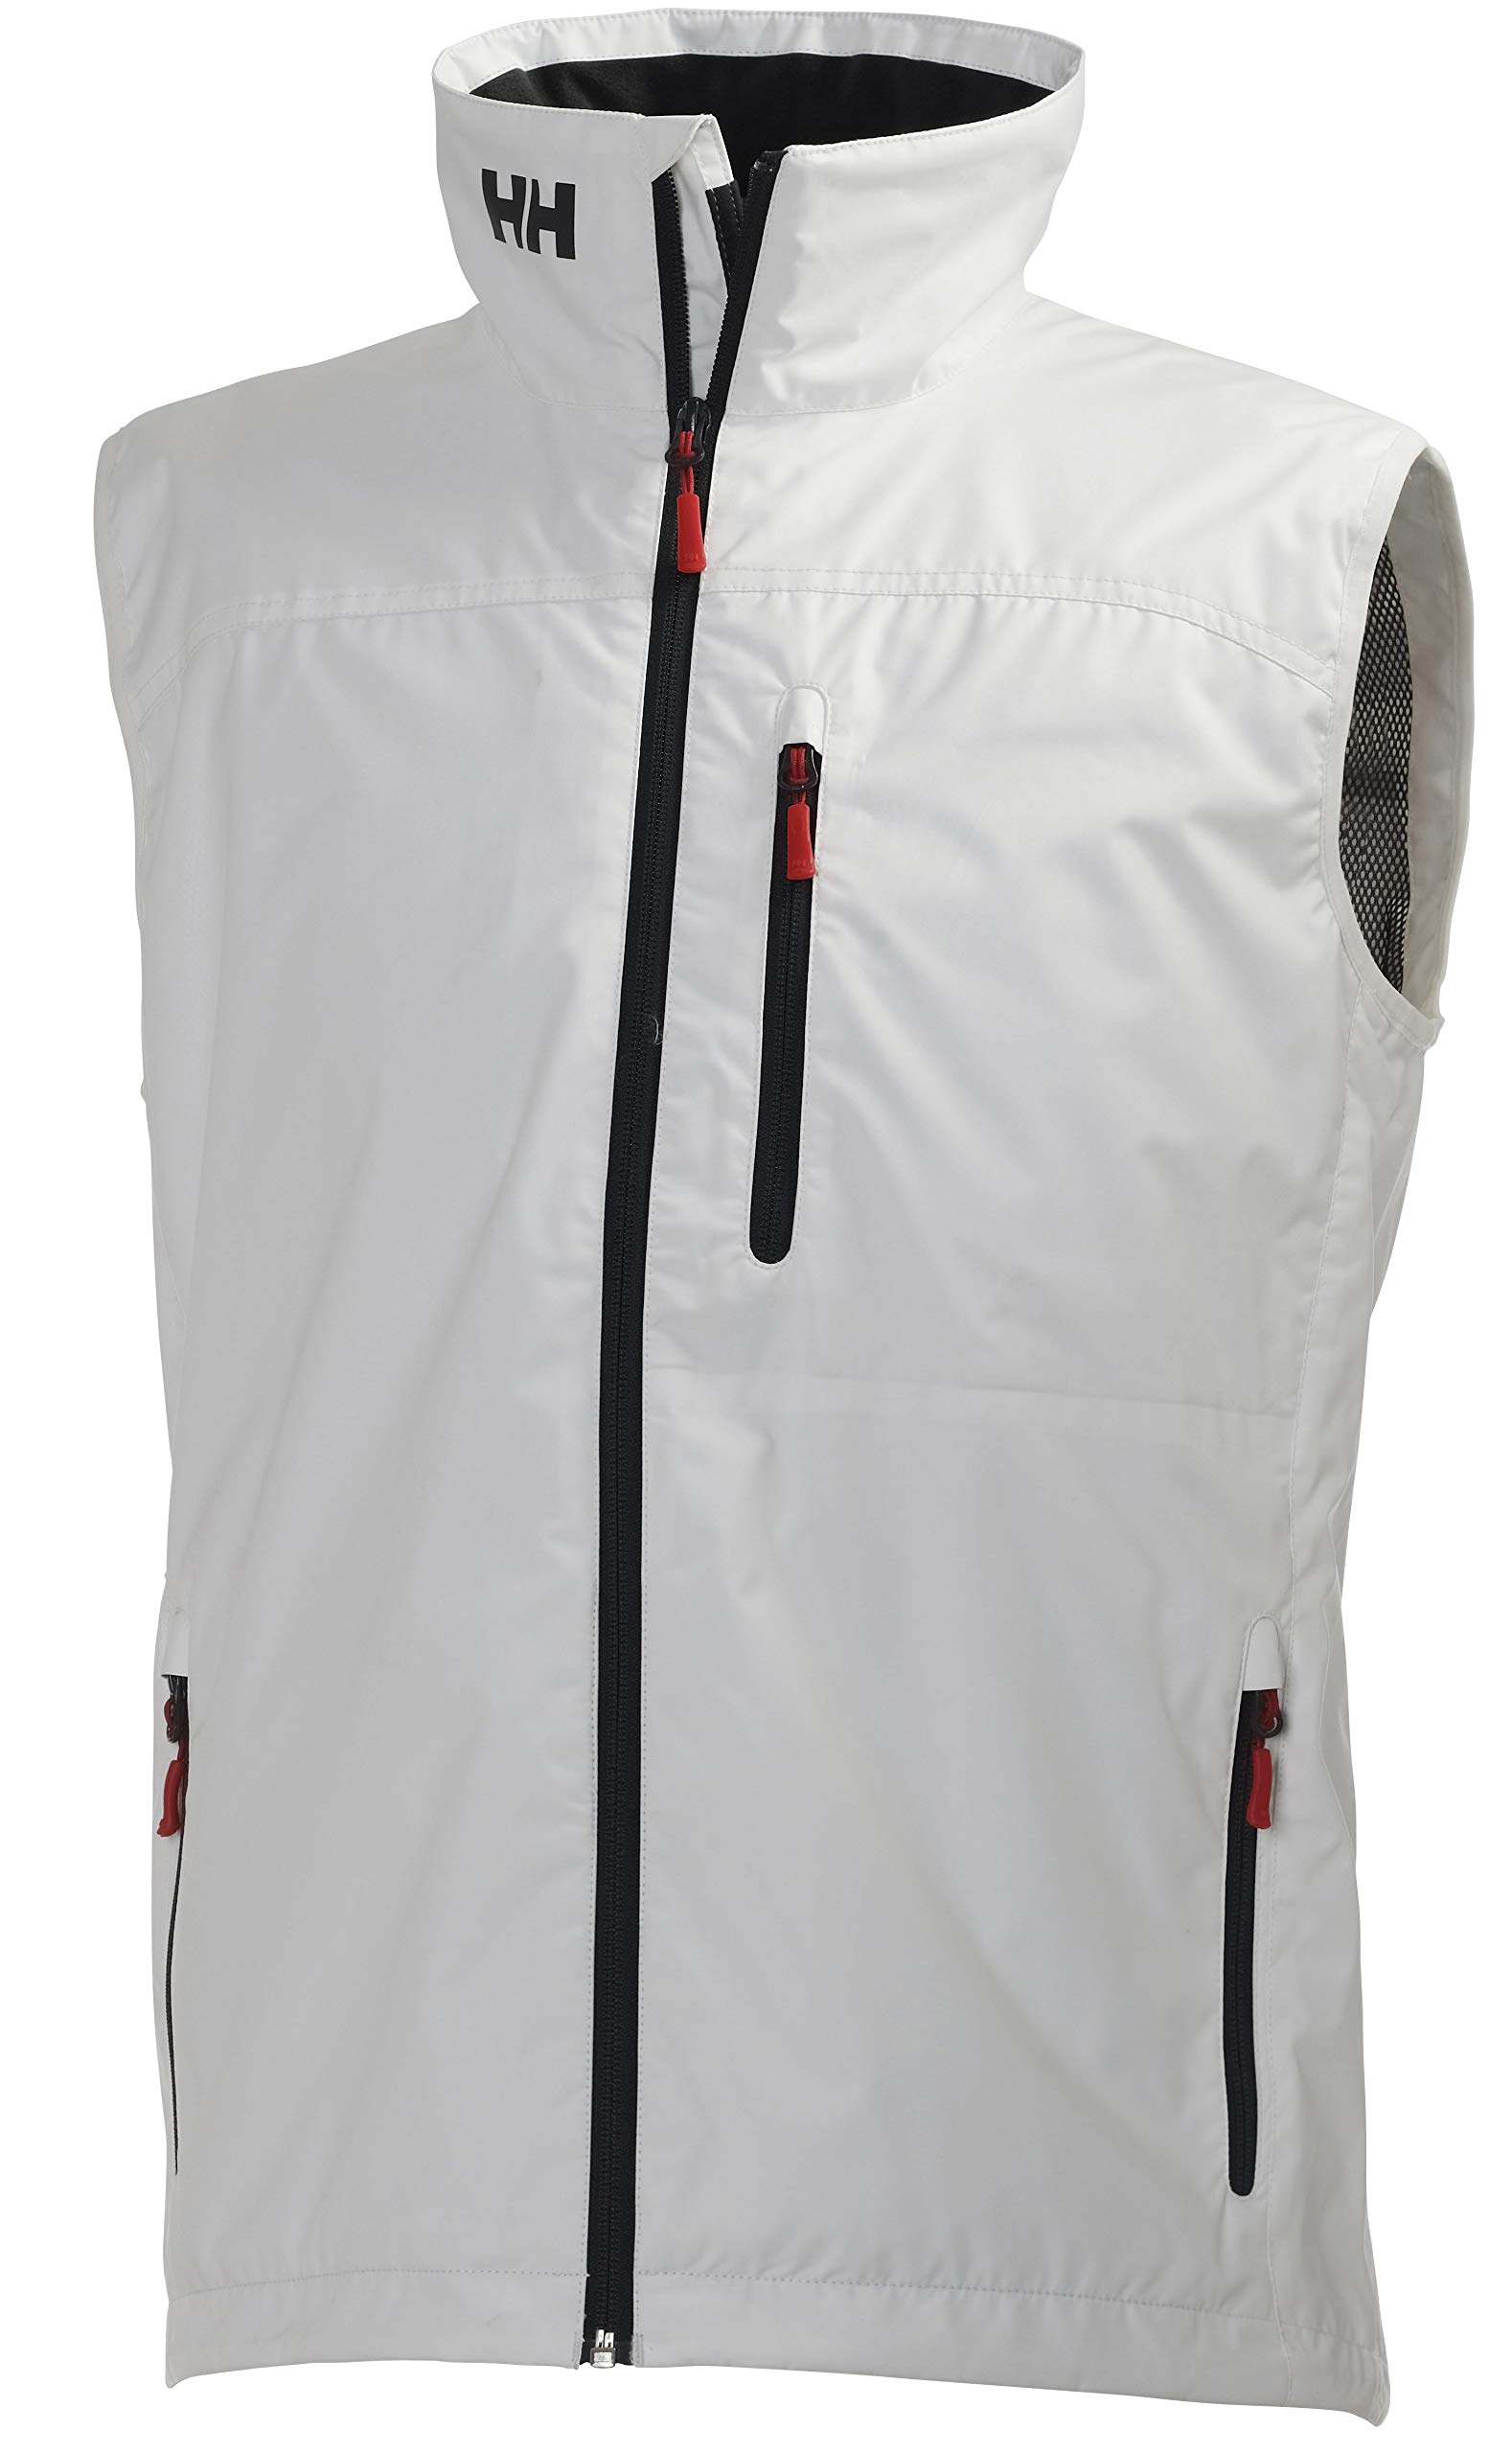 Helly Hansen Men's Crew Vest Waterproof, Windproof, & Breathable Sailing Vest, 001 White, Large by Helly Hansen